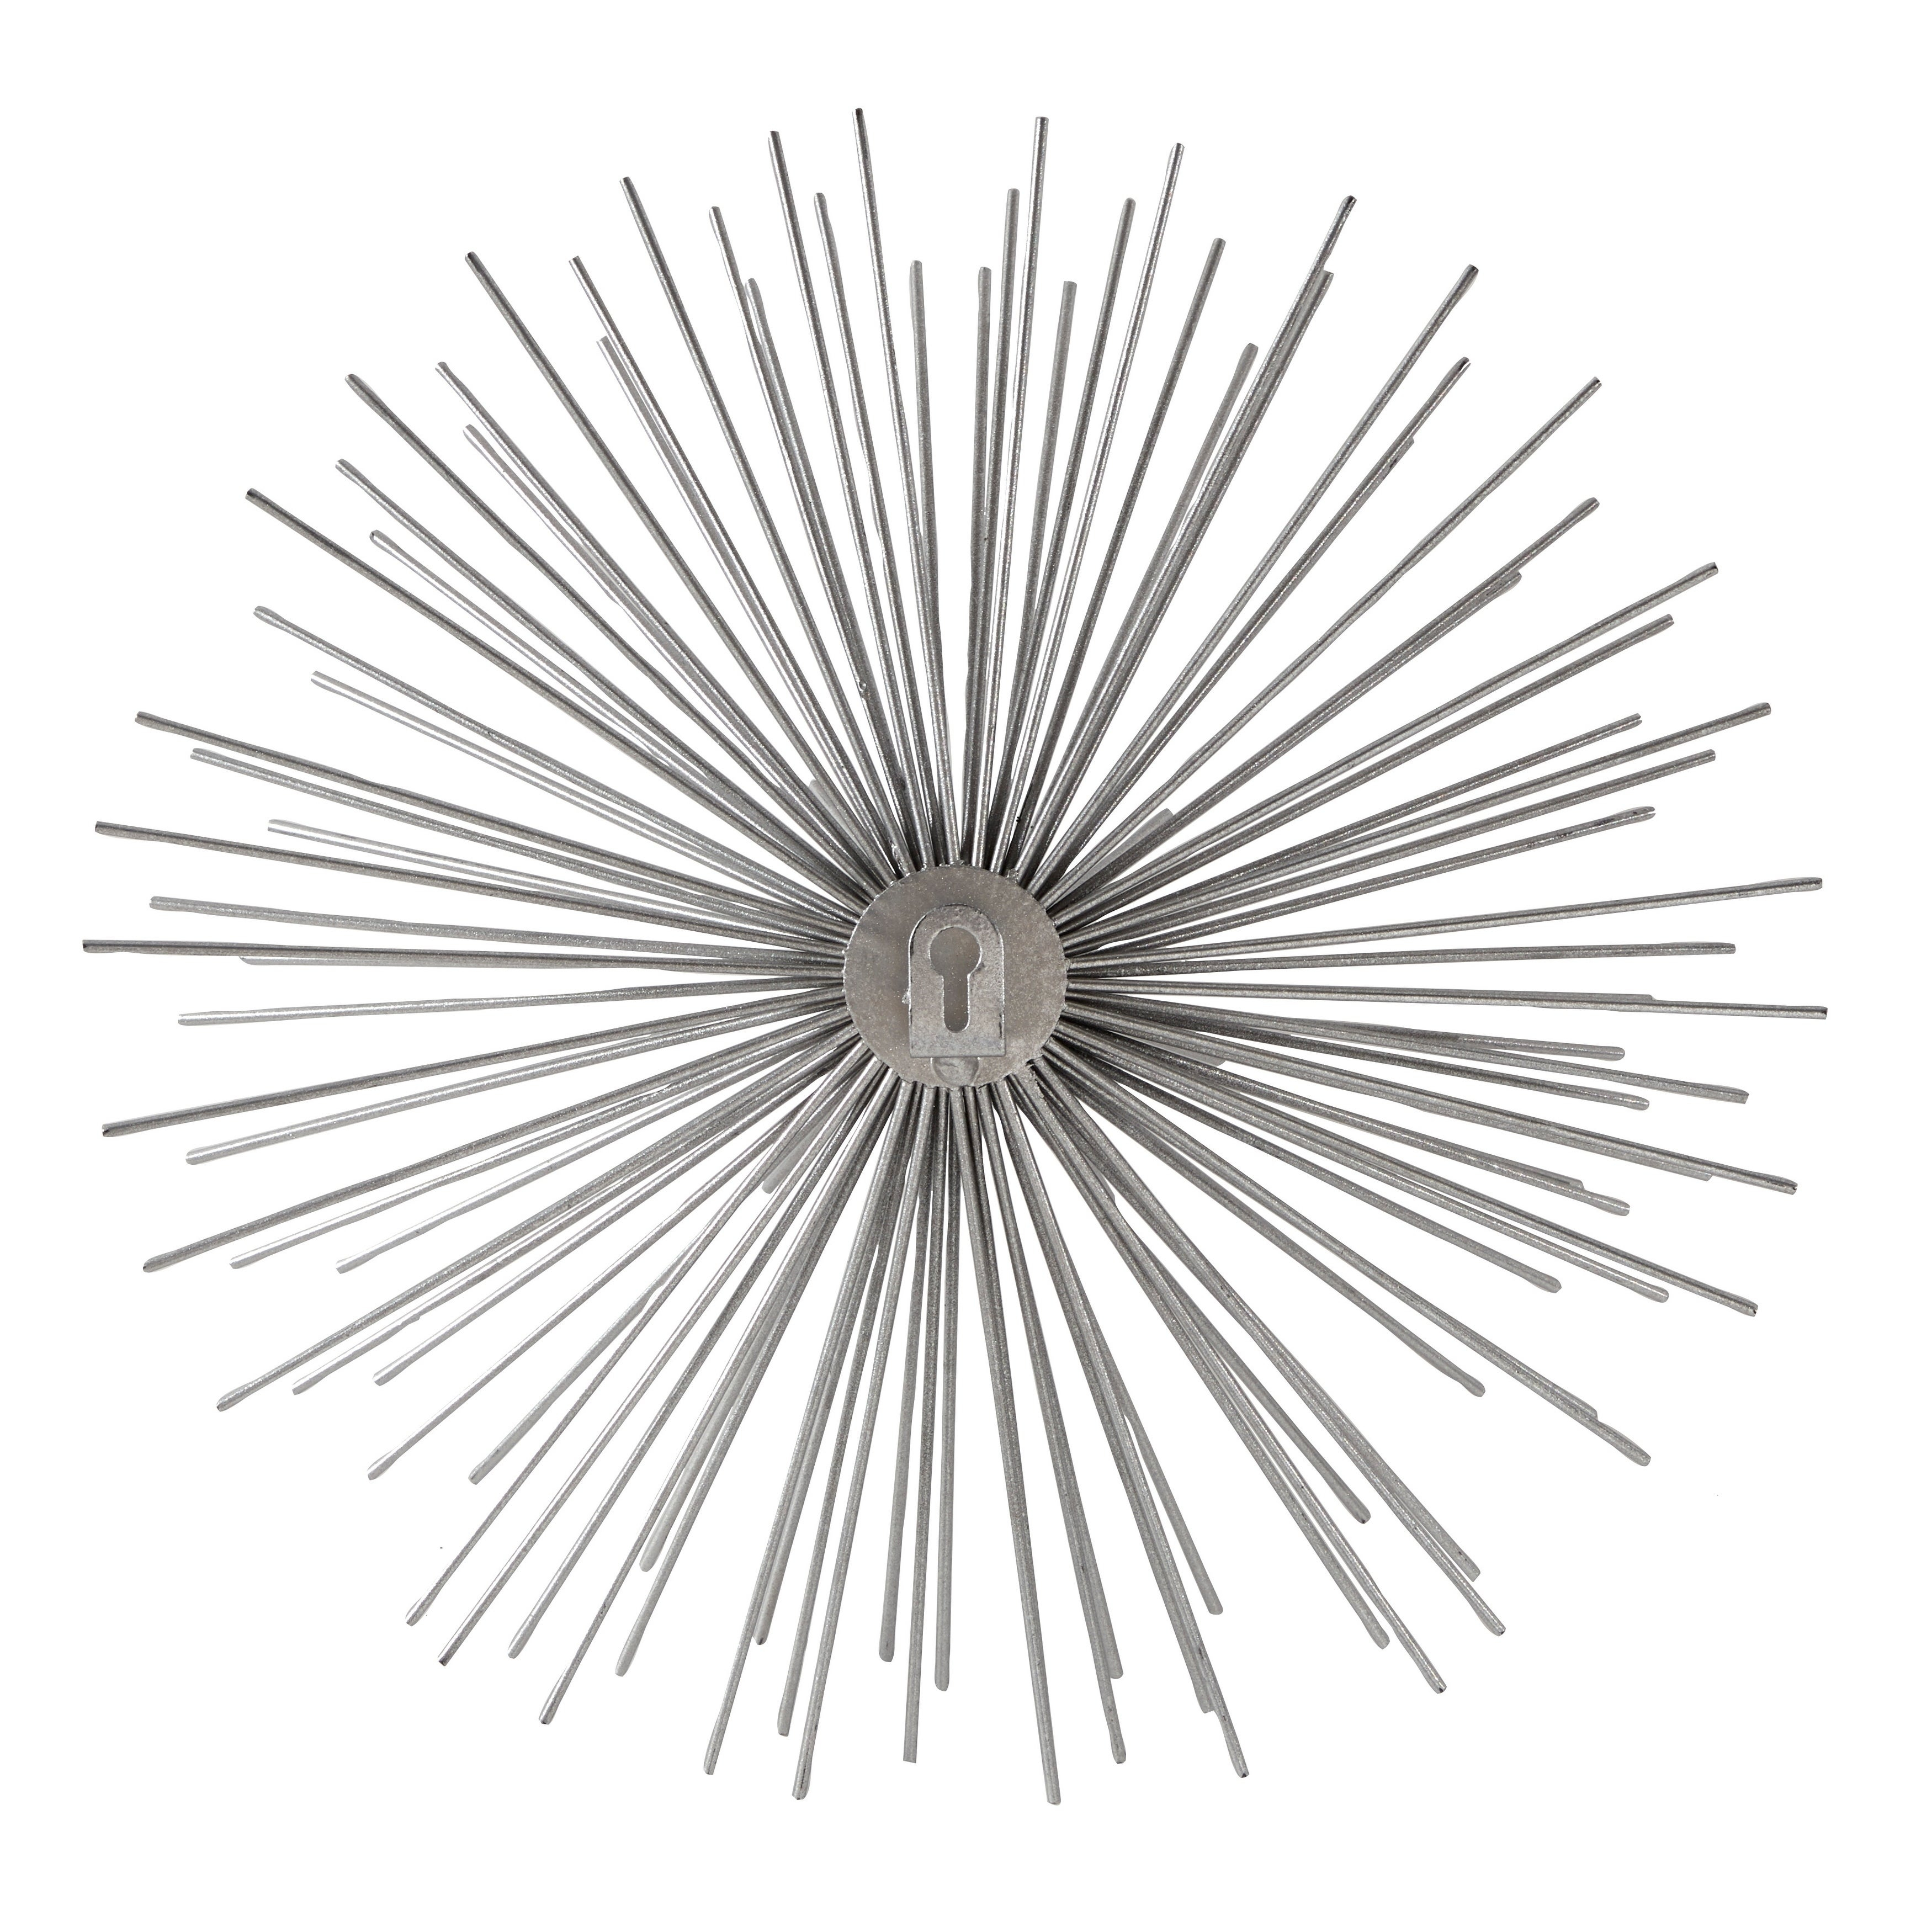 Contemporary 3D Silver Metal Starburst Wall Decor Sculptures Set Of 3 for Set of 3 Contemporary 6, 9, and 11 Inch Gold Tin Starburst Sculptures (Image 5 of 30)